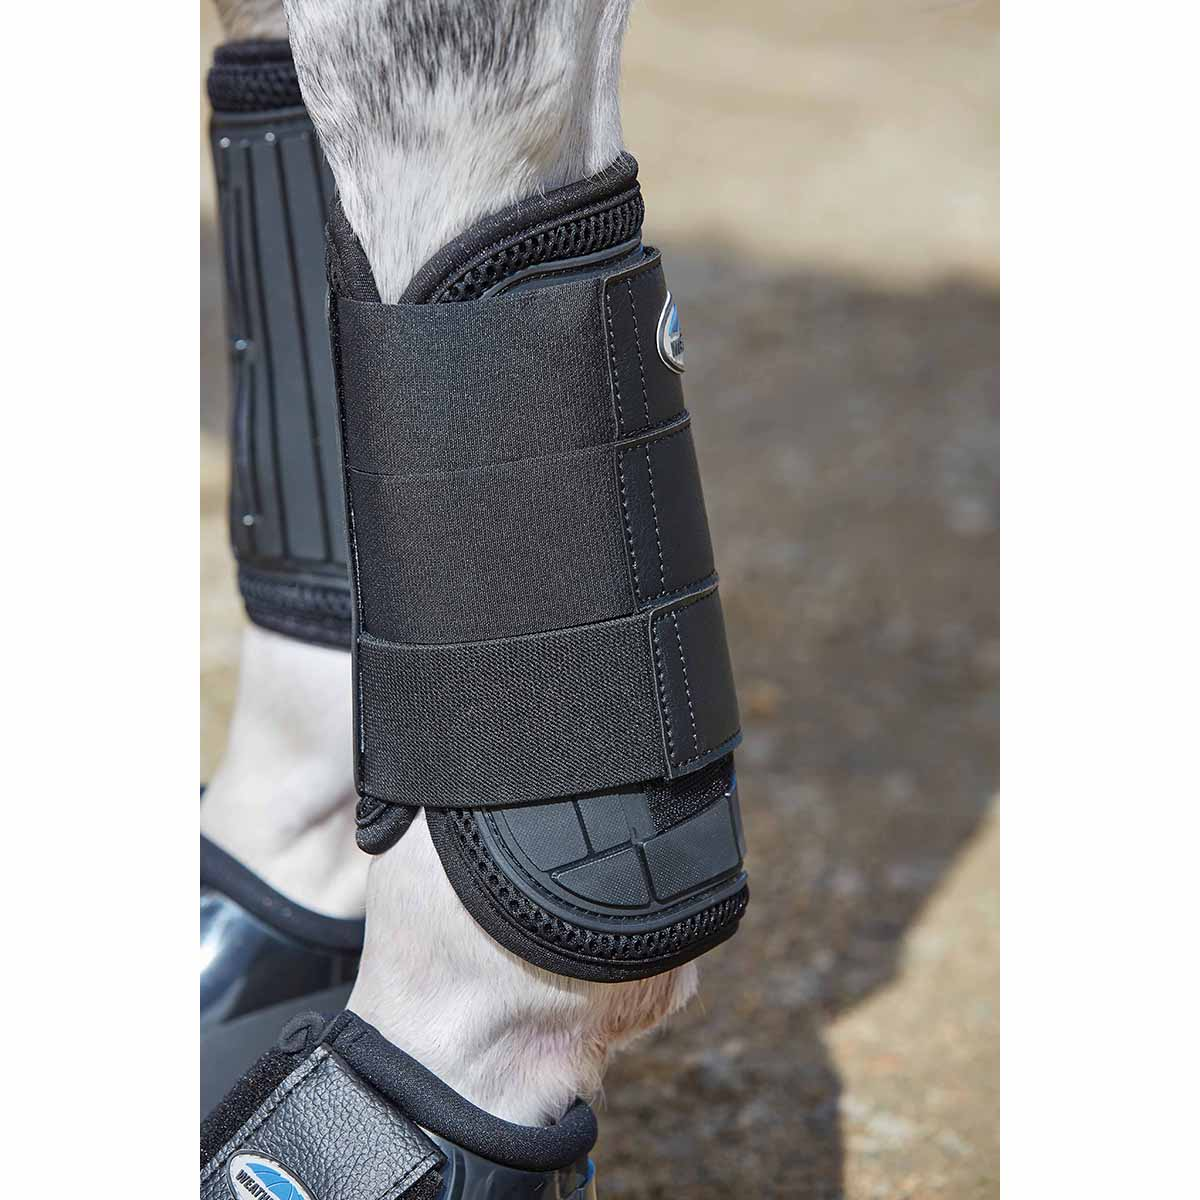 Hoofdstel Montar Excellence Jumping, Extra fullin brown